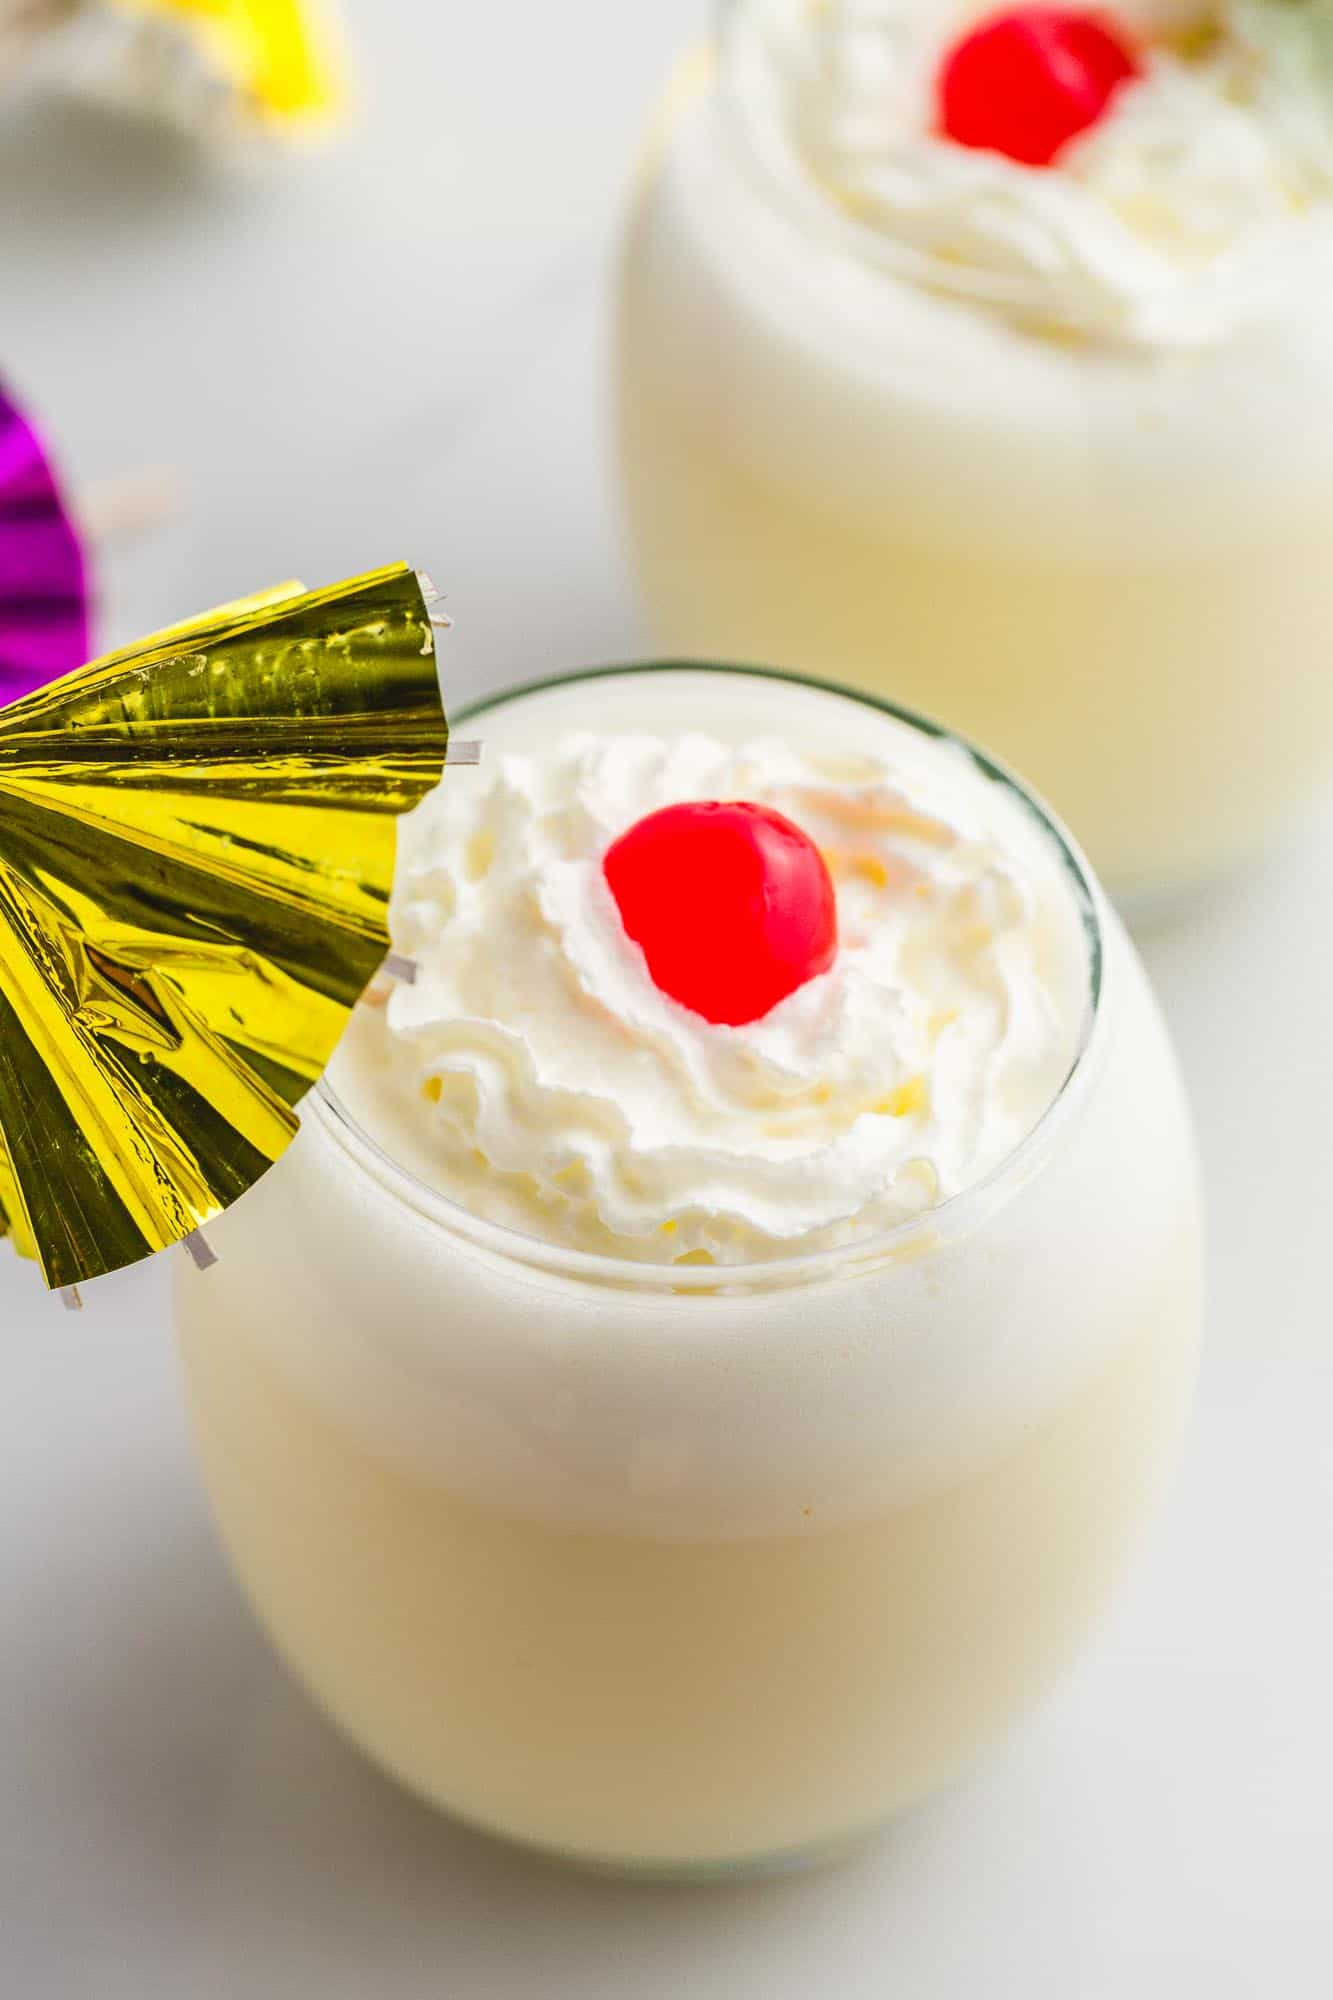 Piña Colada in 2 glasses with whipped cream, maraschino cherries and cocktail umbrellas